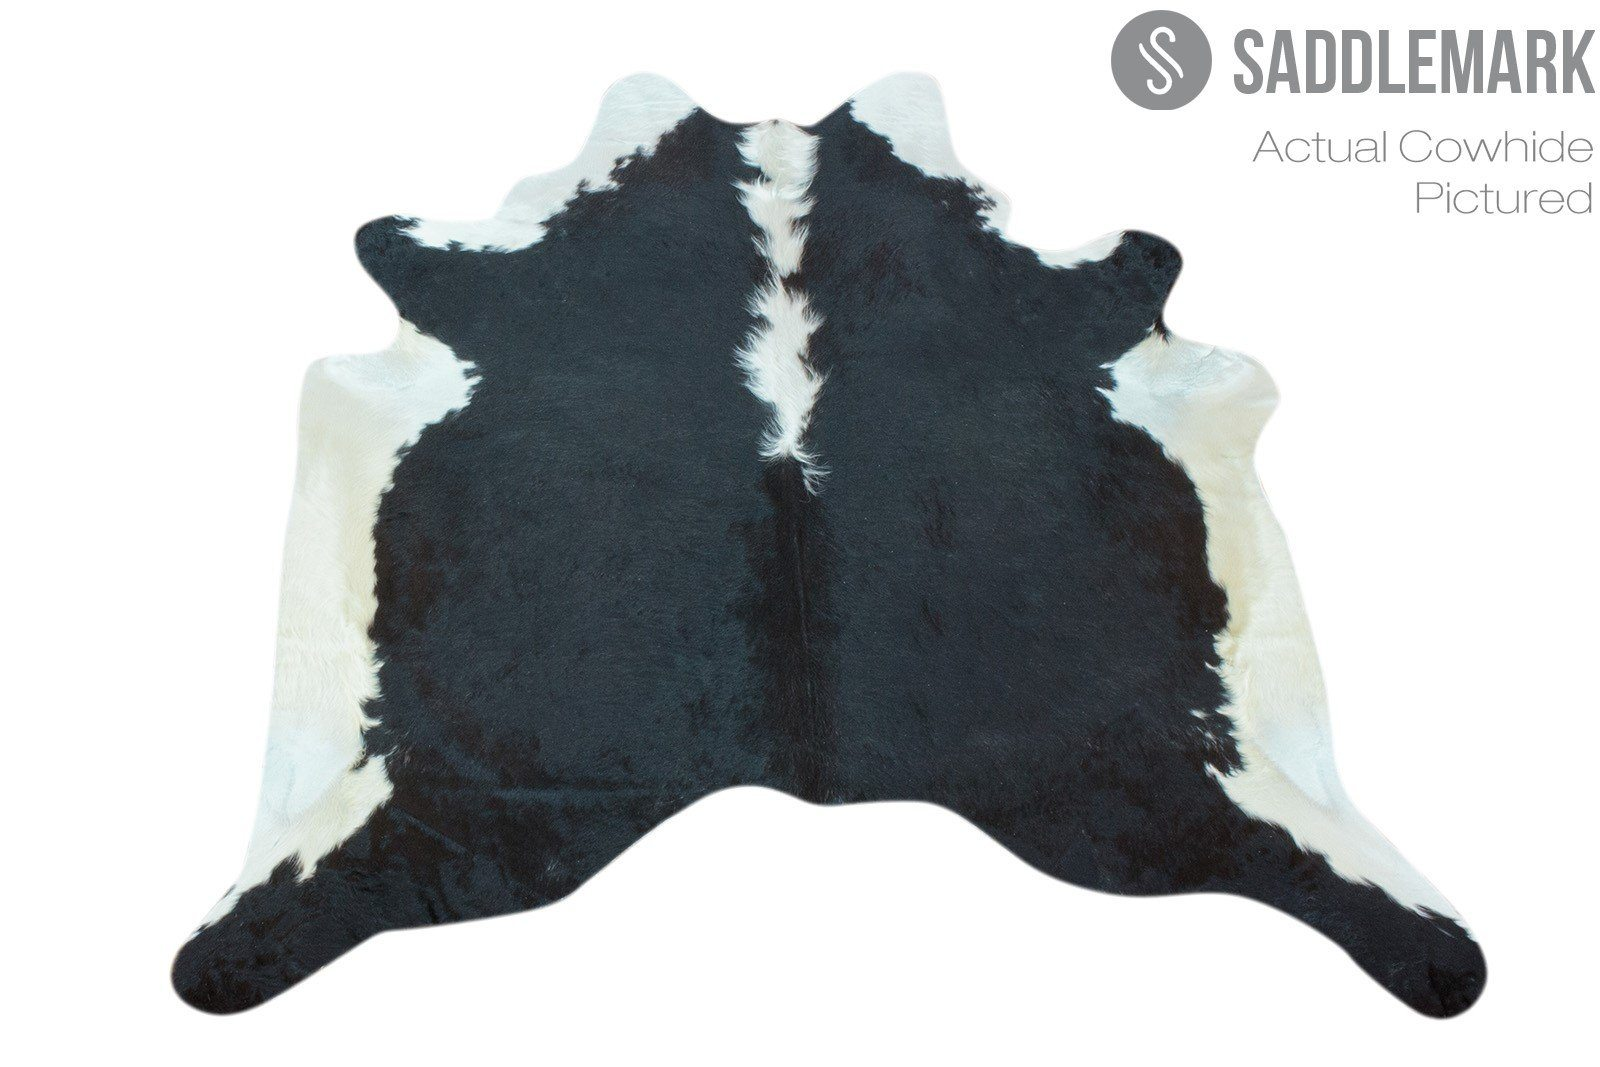 "Black and White Brazilian Cowhide Rug 6'7"" x 6'1"" by Saddlemark #2611"